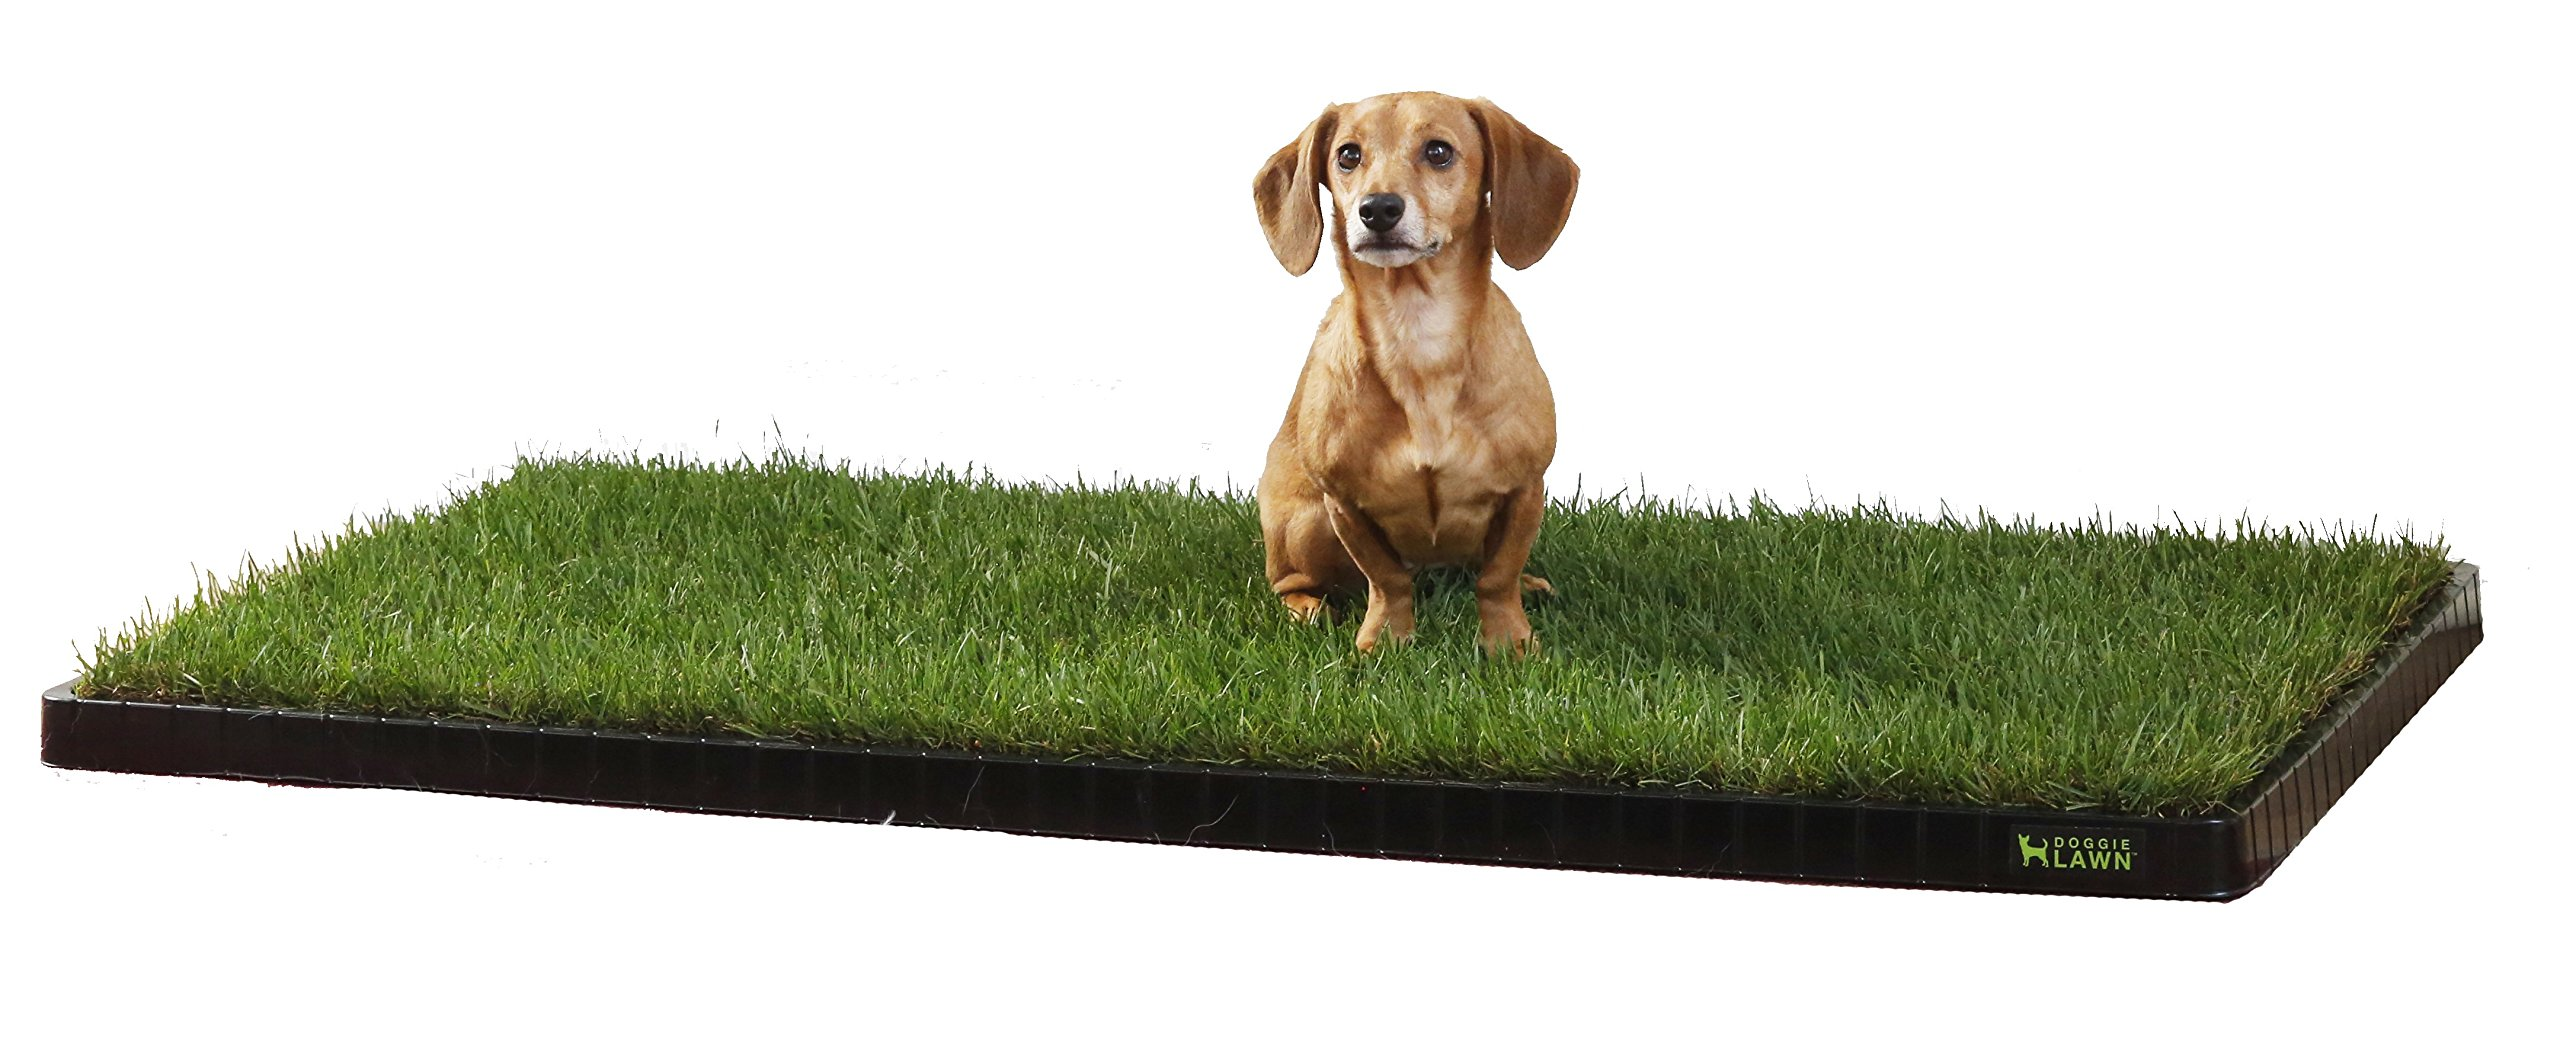 DoggieLawn Dog Potty Kit - REAL Grass & Tray - LARGE 24x48 inches